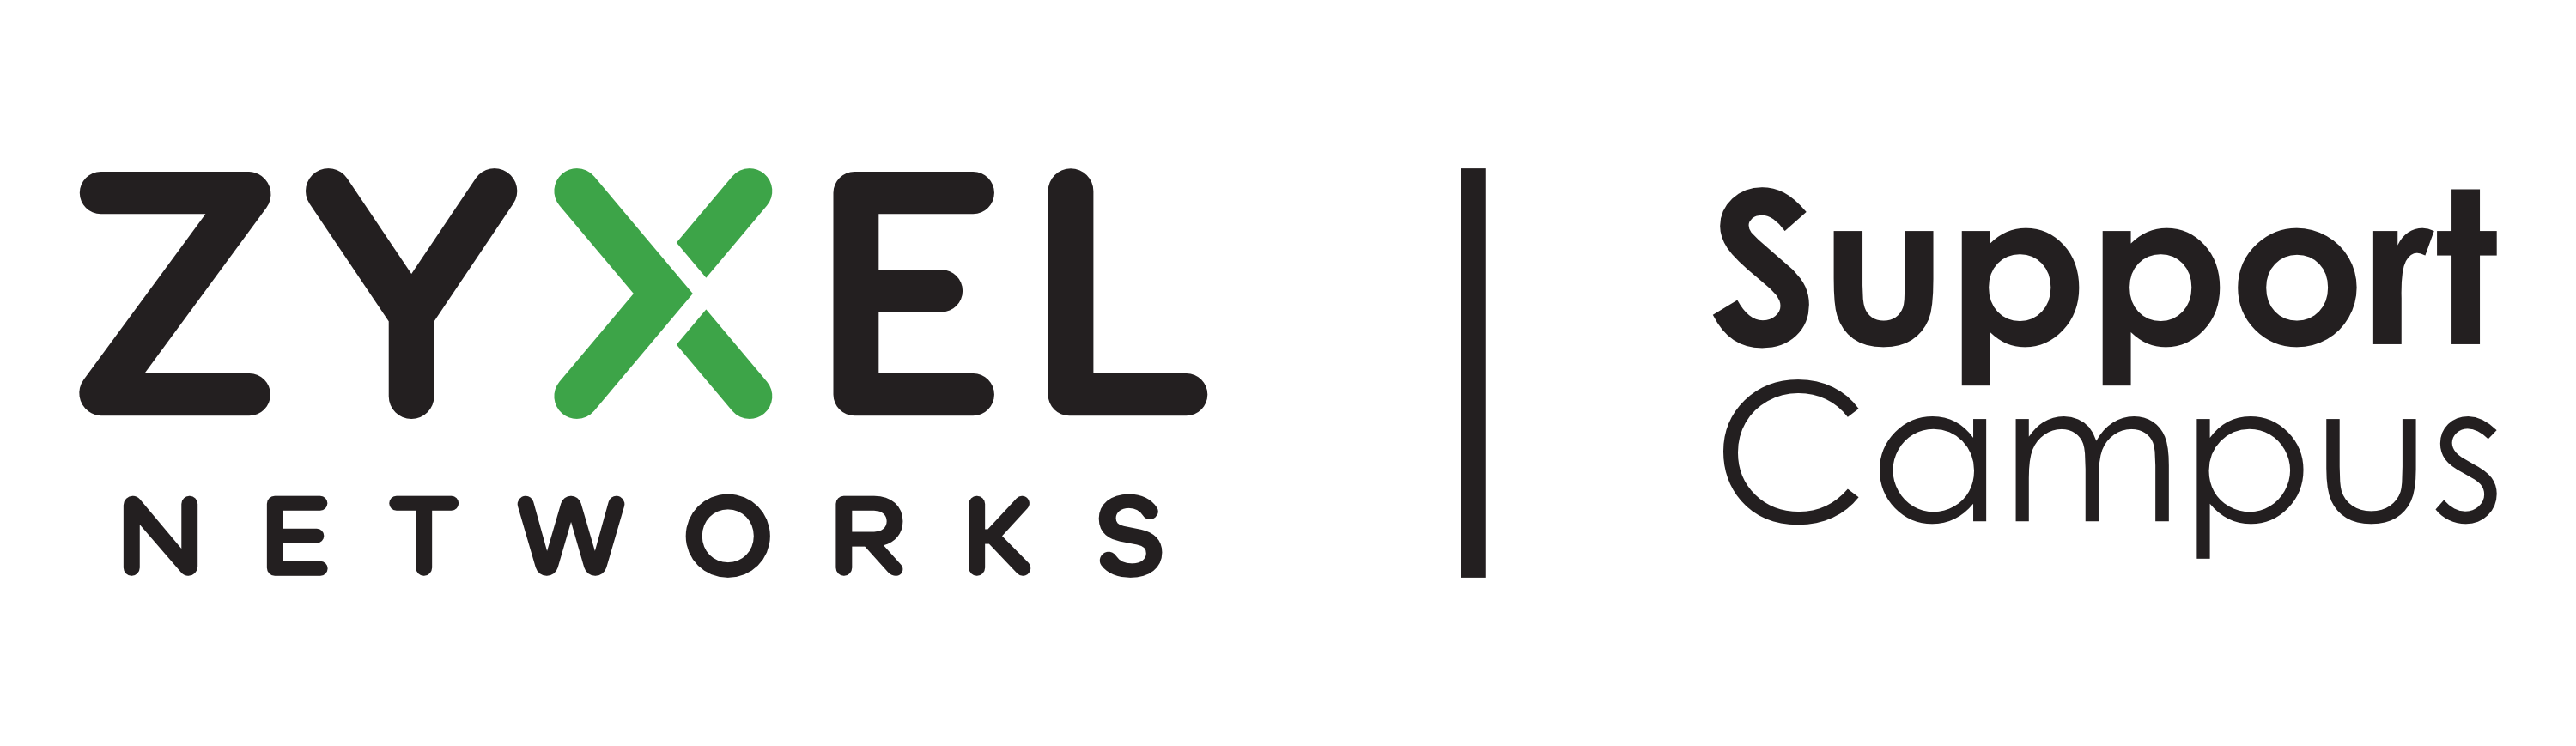 Zyxel_NETWORKS___Support_Campus_Logo__2_.png